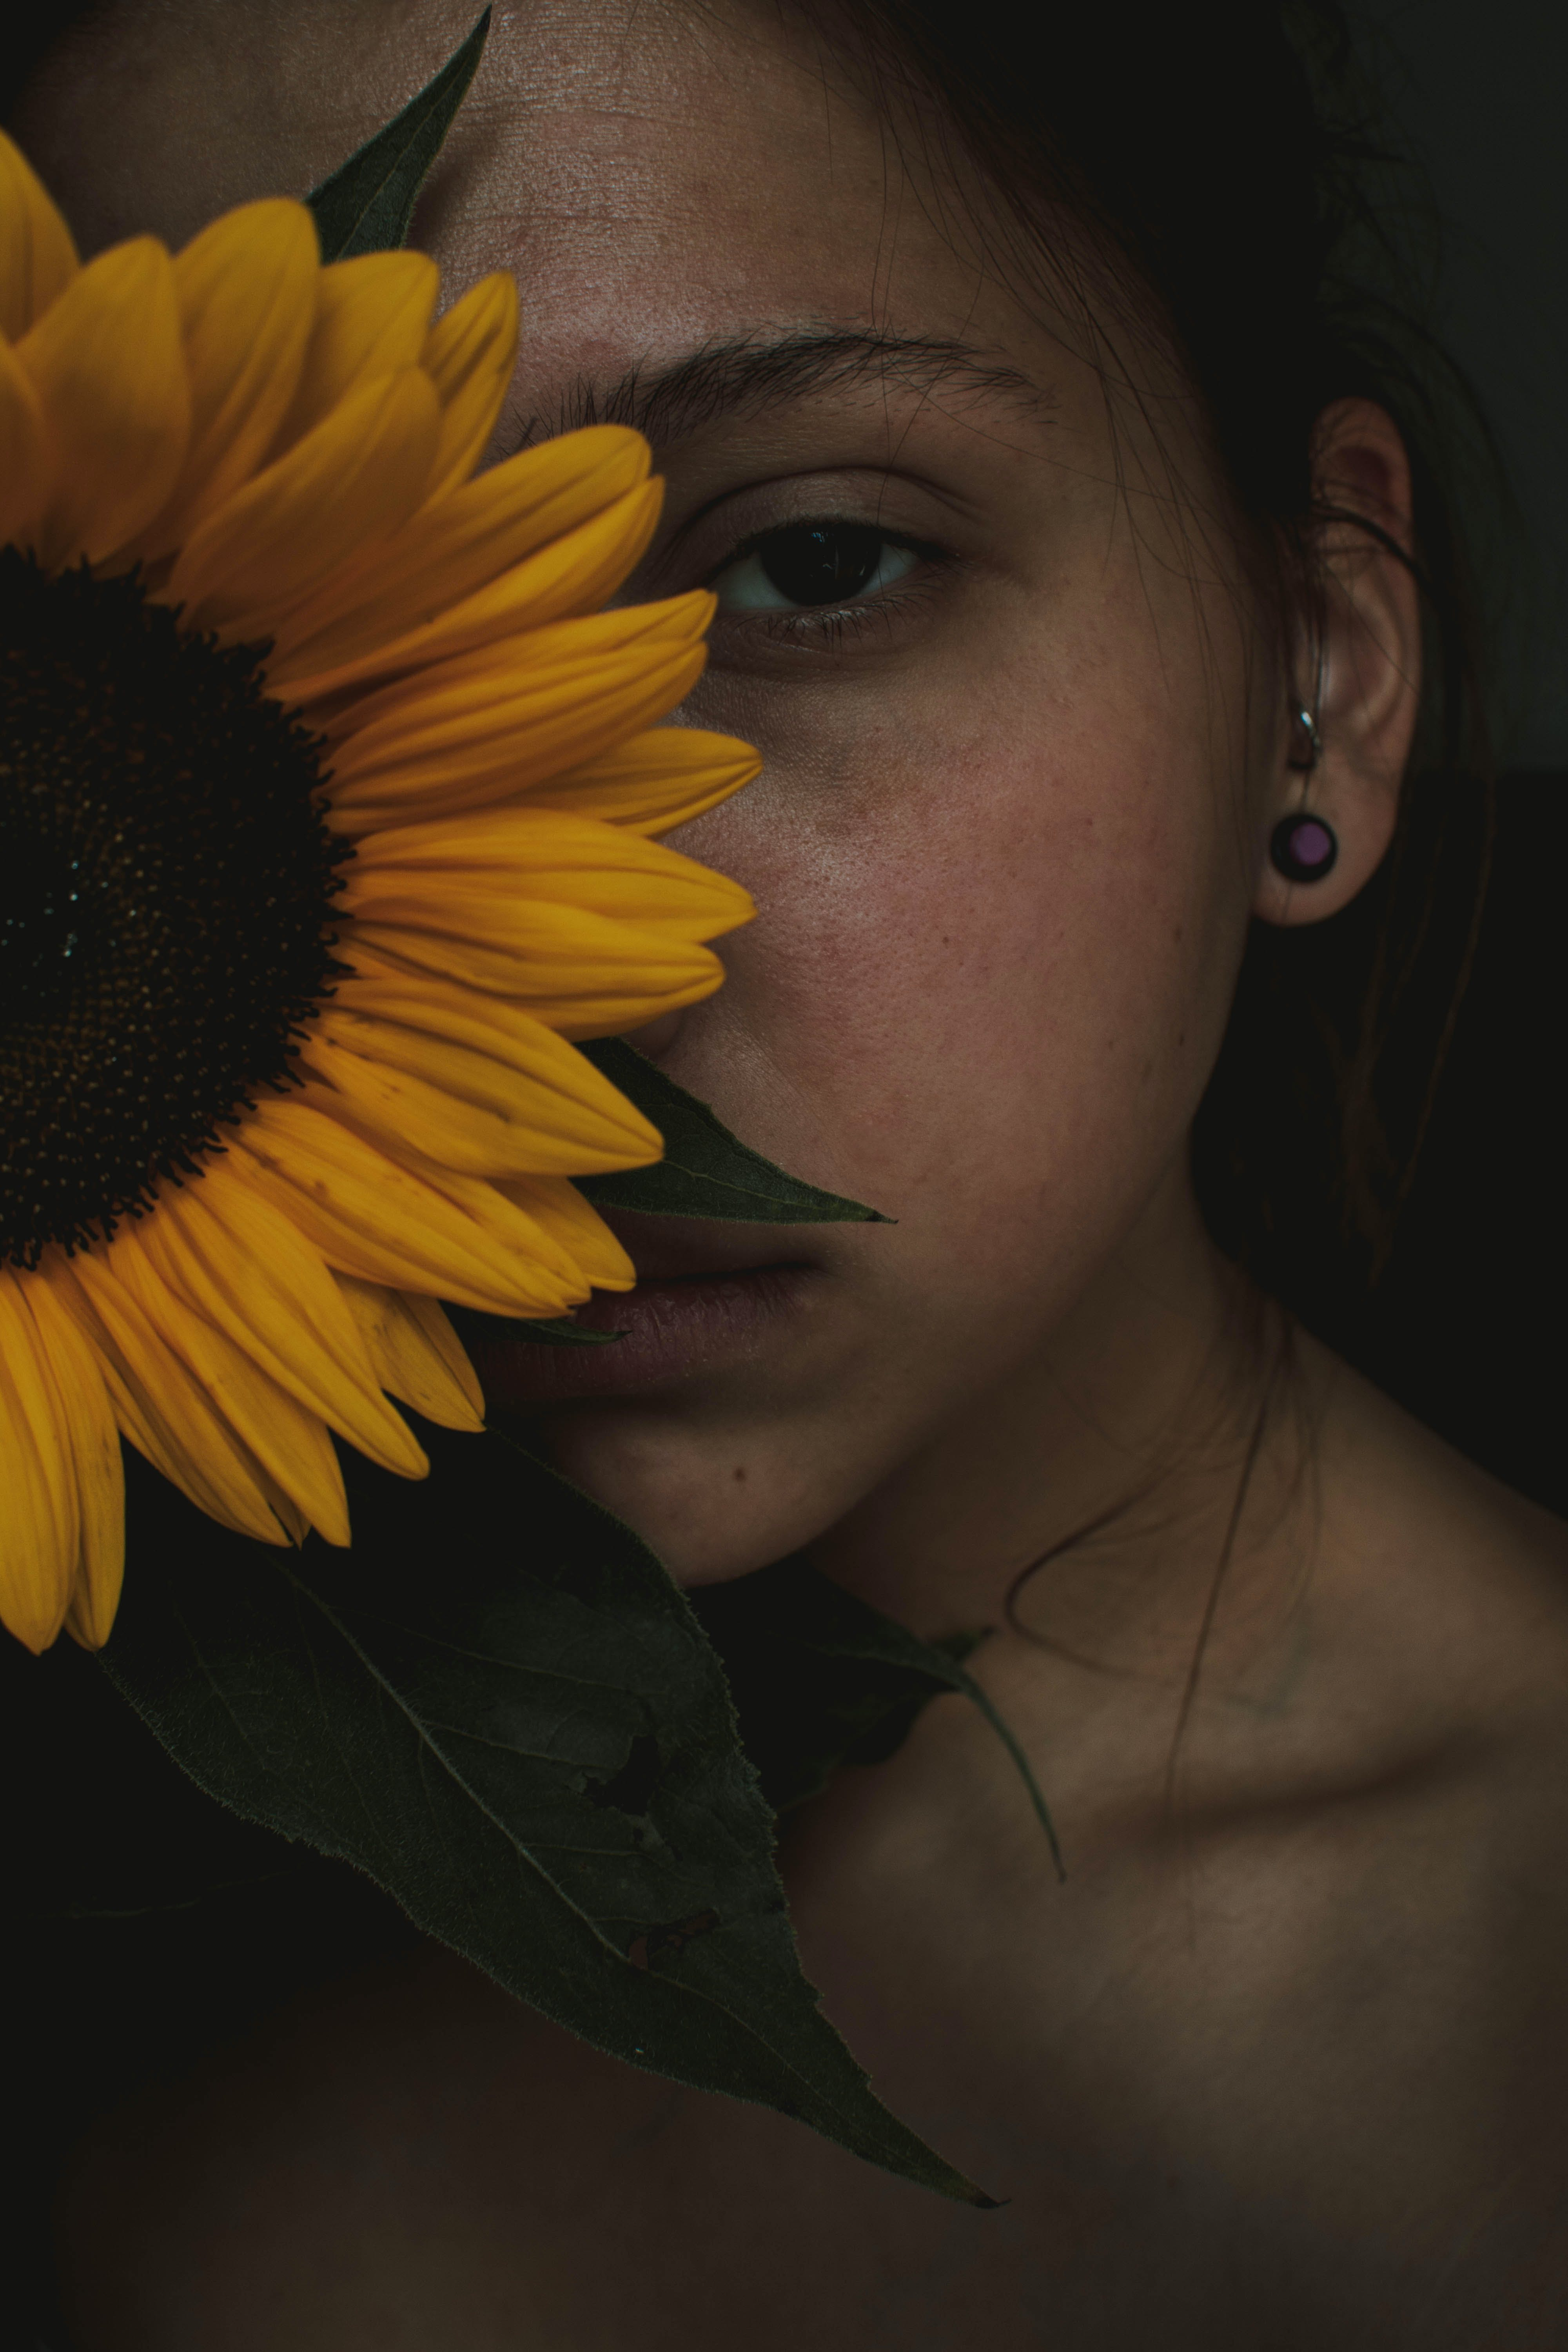 Woman Hiding on Sunflower Photography